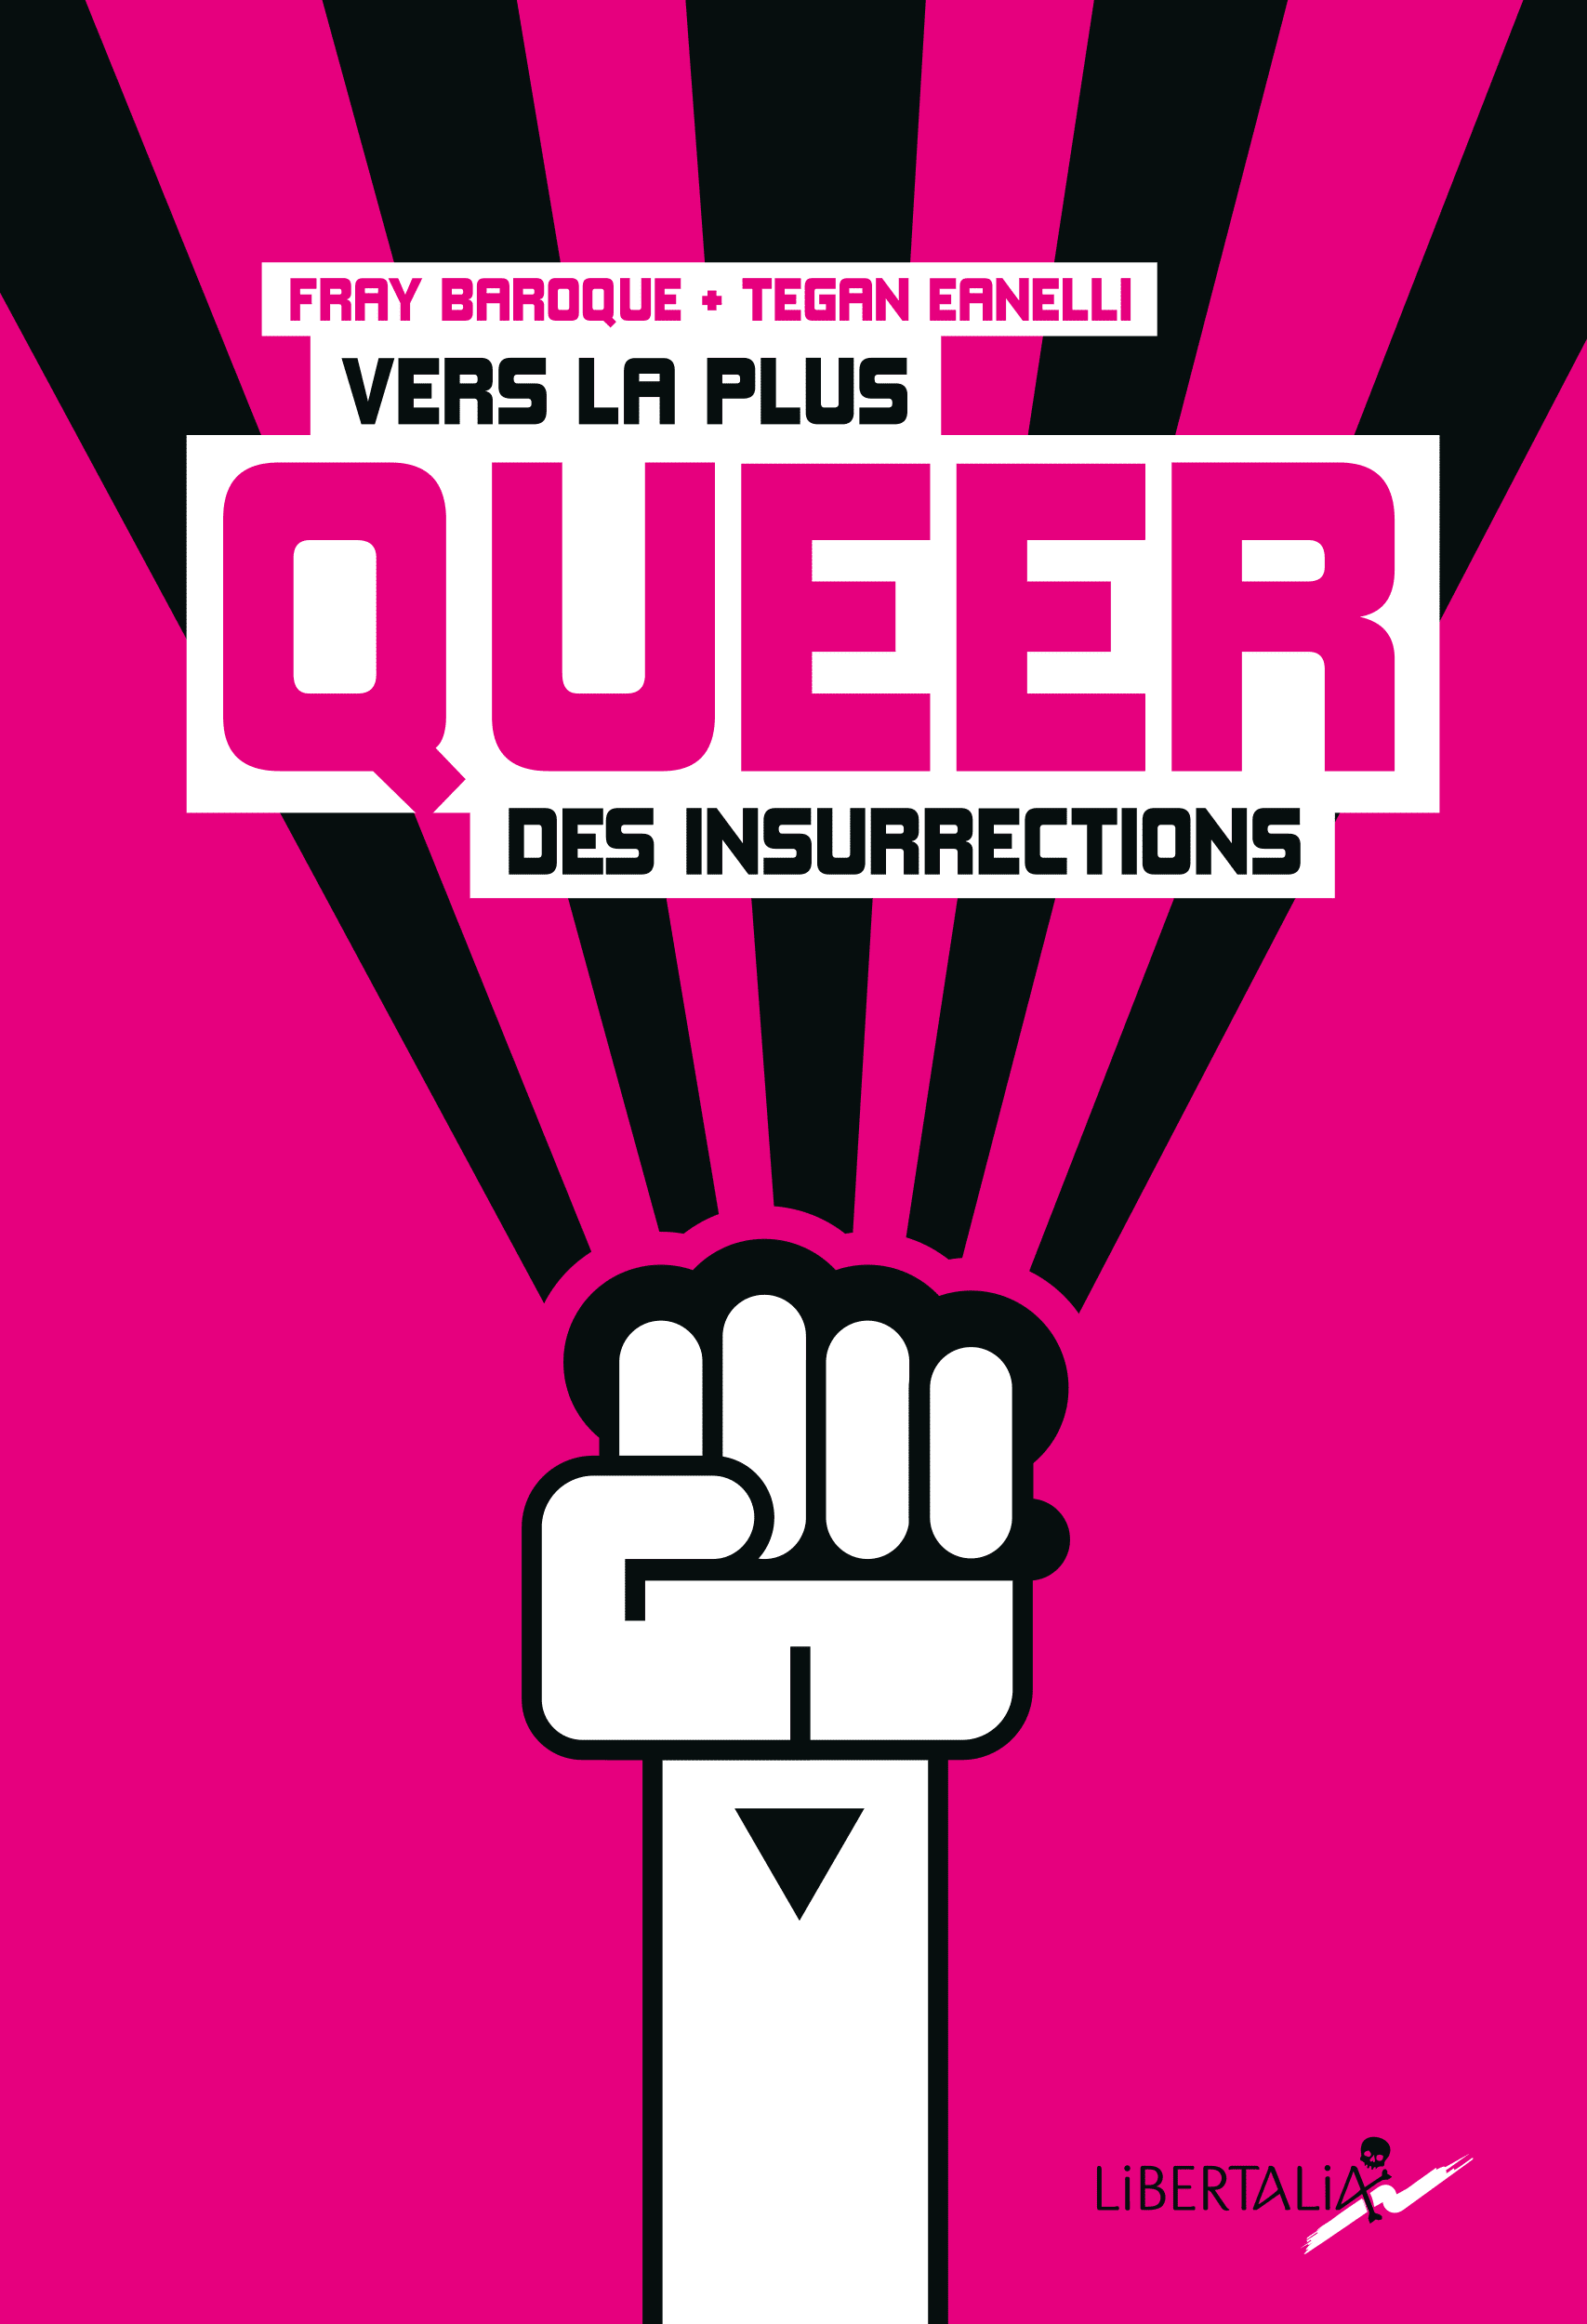 15 libertalia vers la plus queer des insurrections bruno bartkowiak illustrateur ariege occitanie